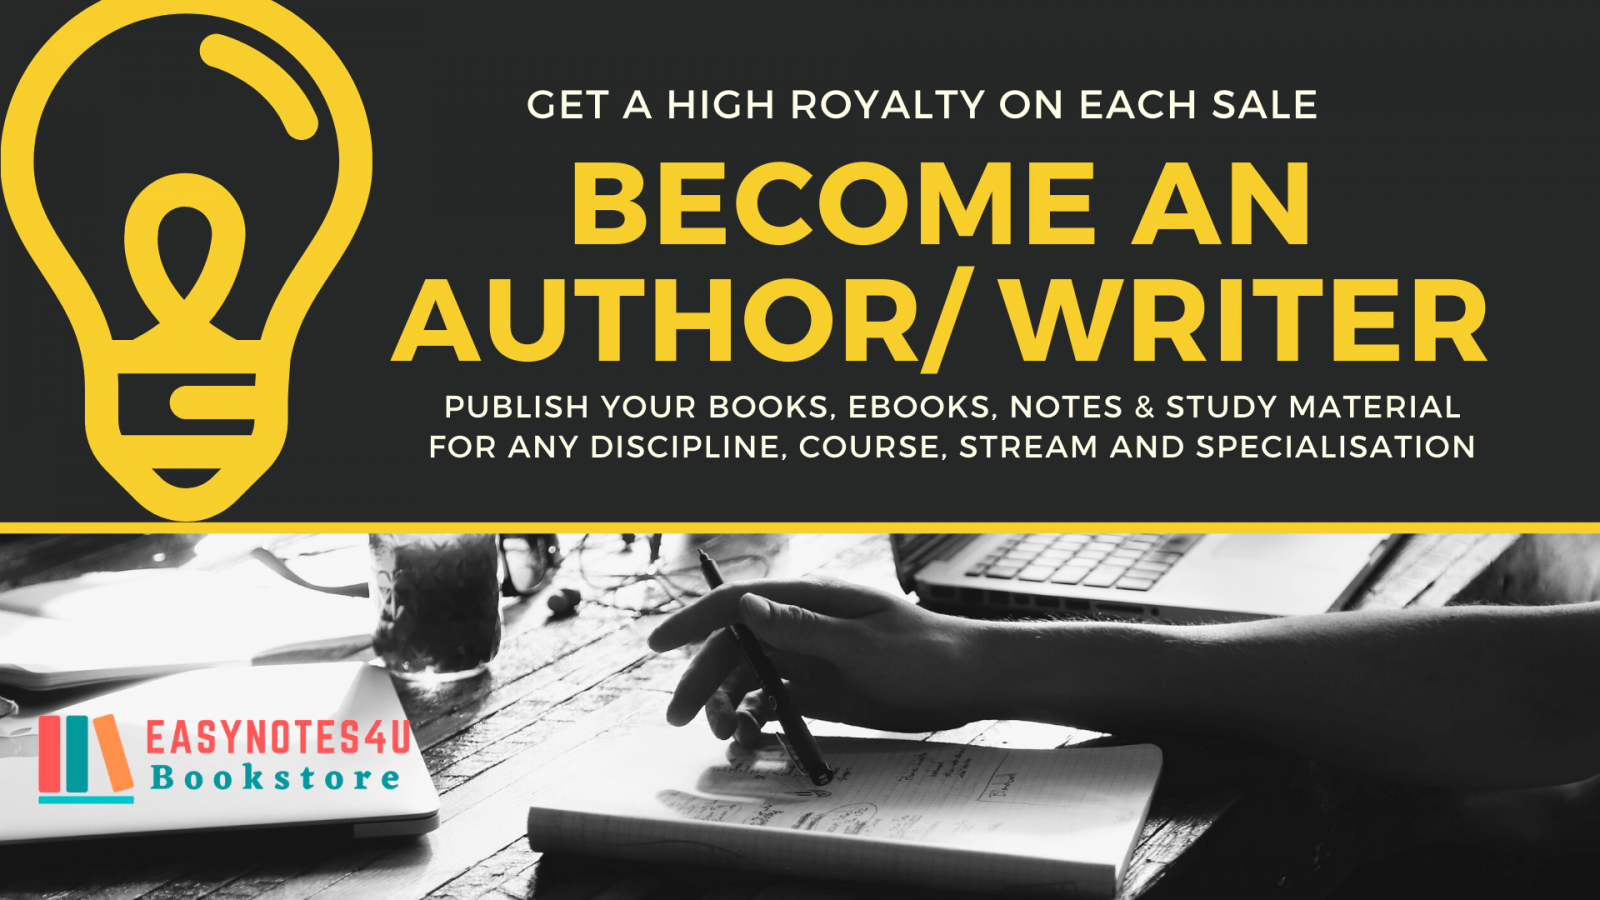 Become an Author/ Writer and Publish your Book with High Royalty